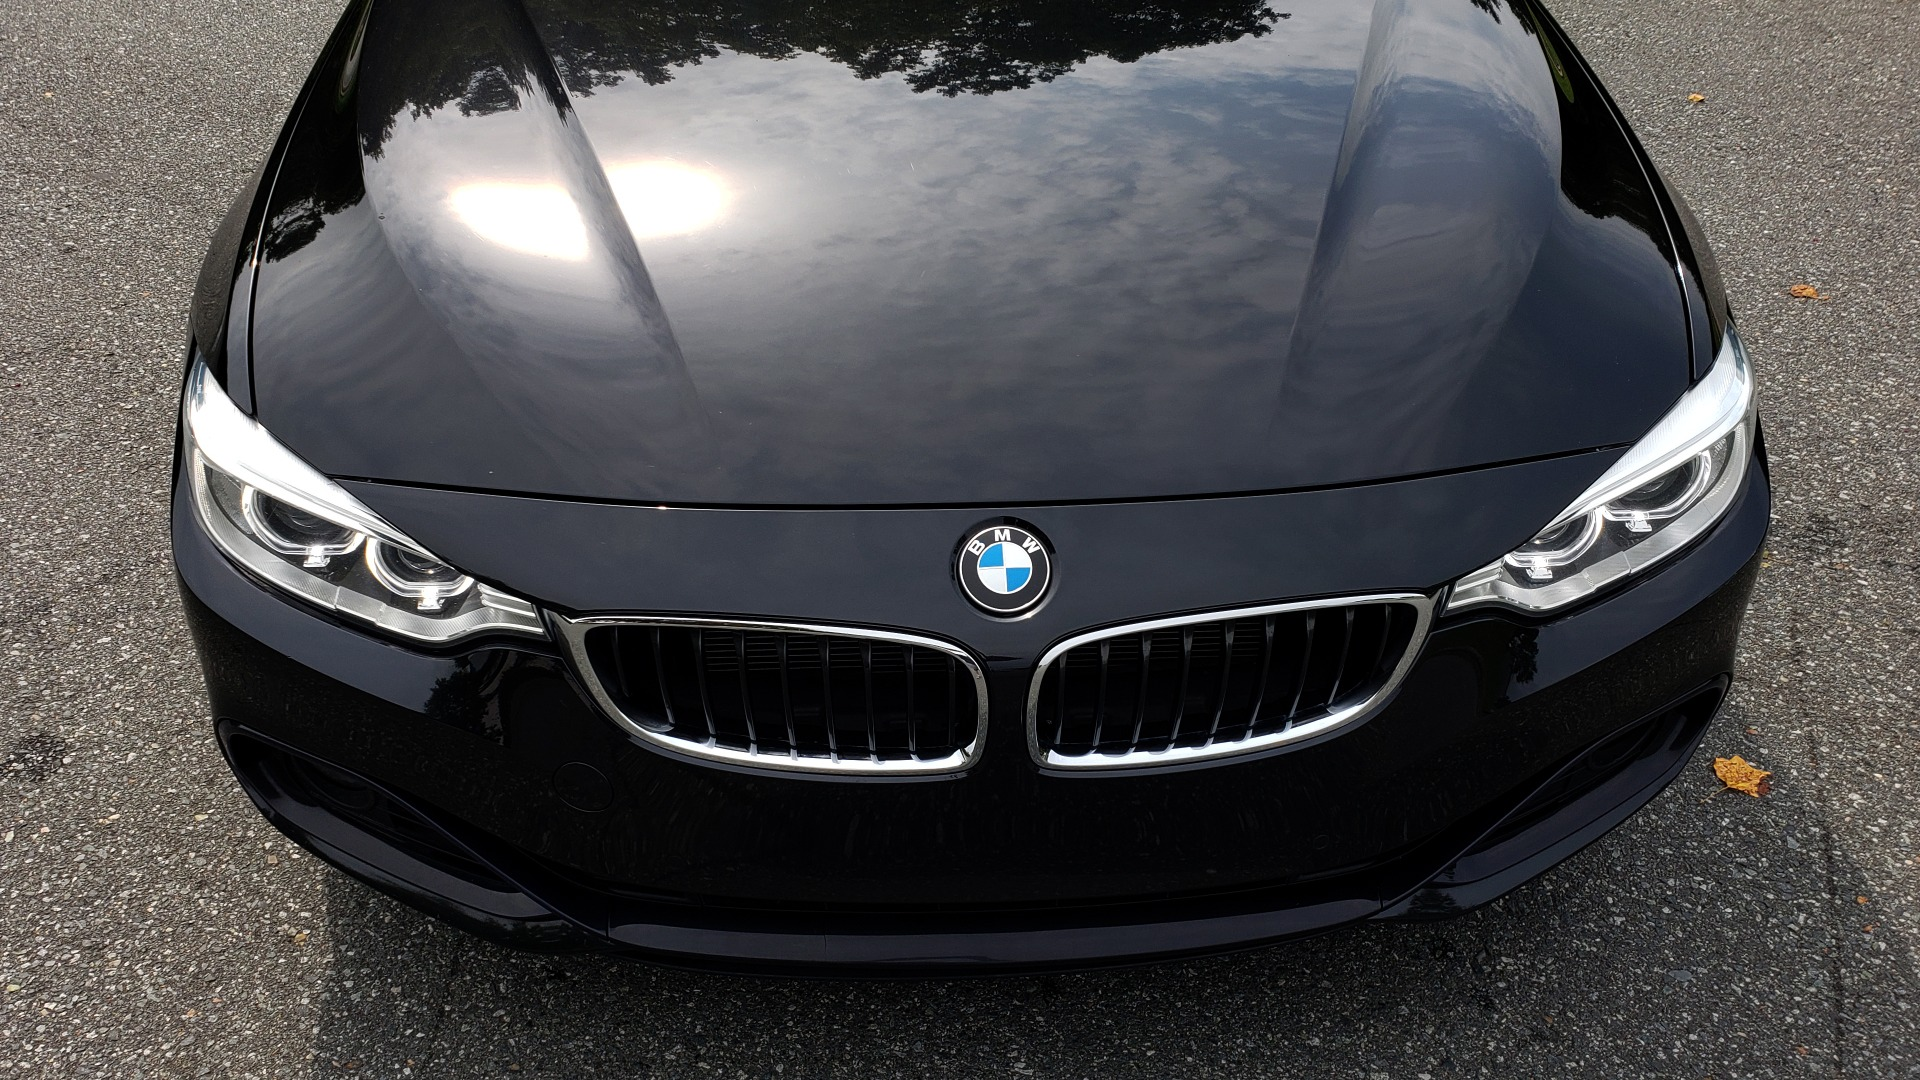 Used 2016 BMW 4 SERIES 428I PREMIUM COUPE / 2.0L / AUTO / NAV / SUNROOF / HEATED SEATS for sale $22,995 at Formula Imports in Charlotte NC 28227 20